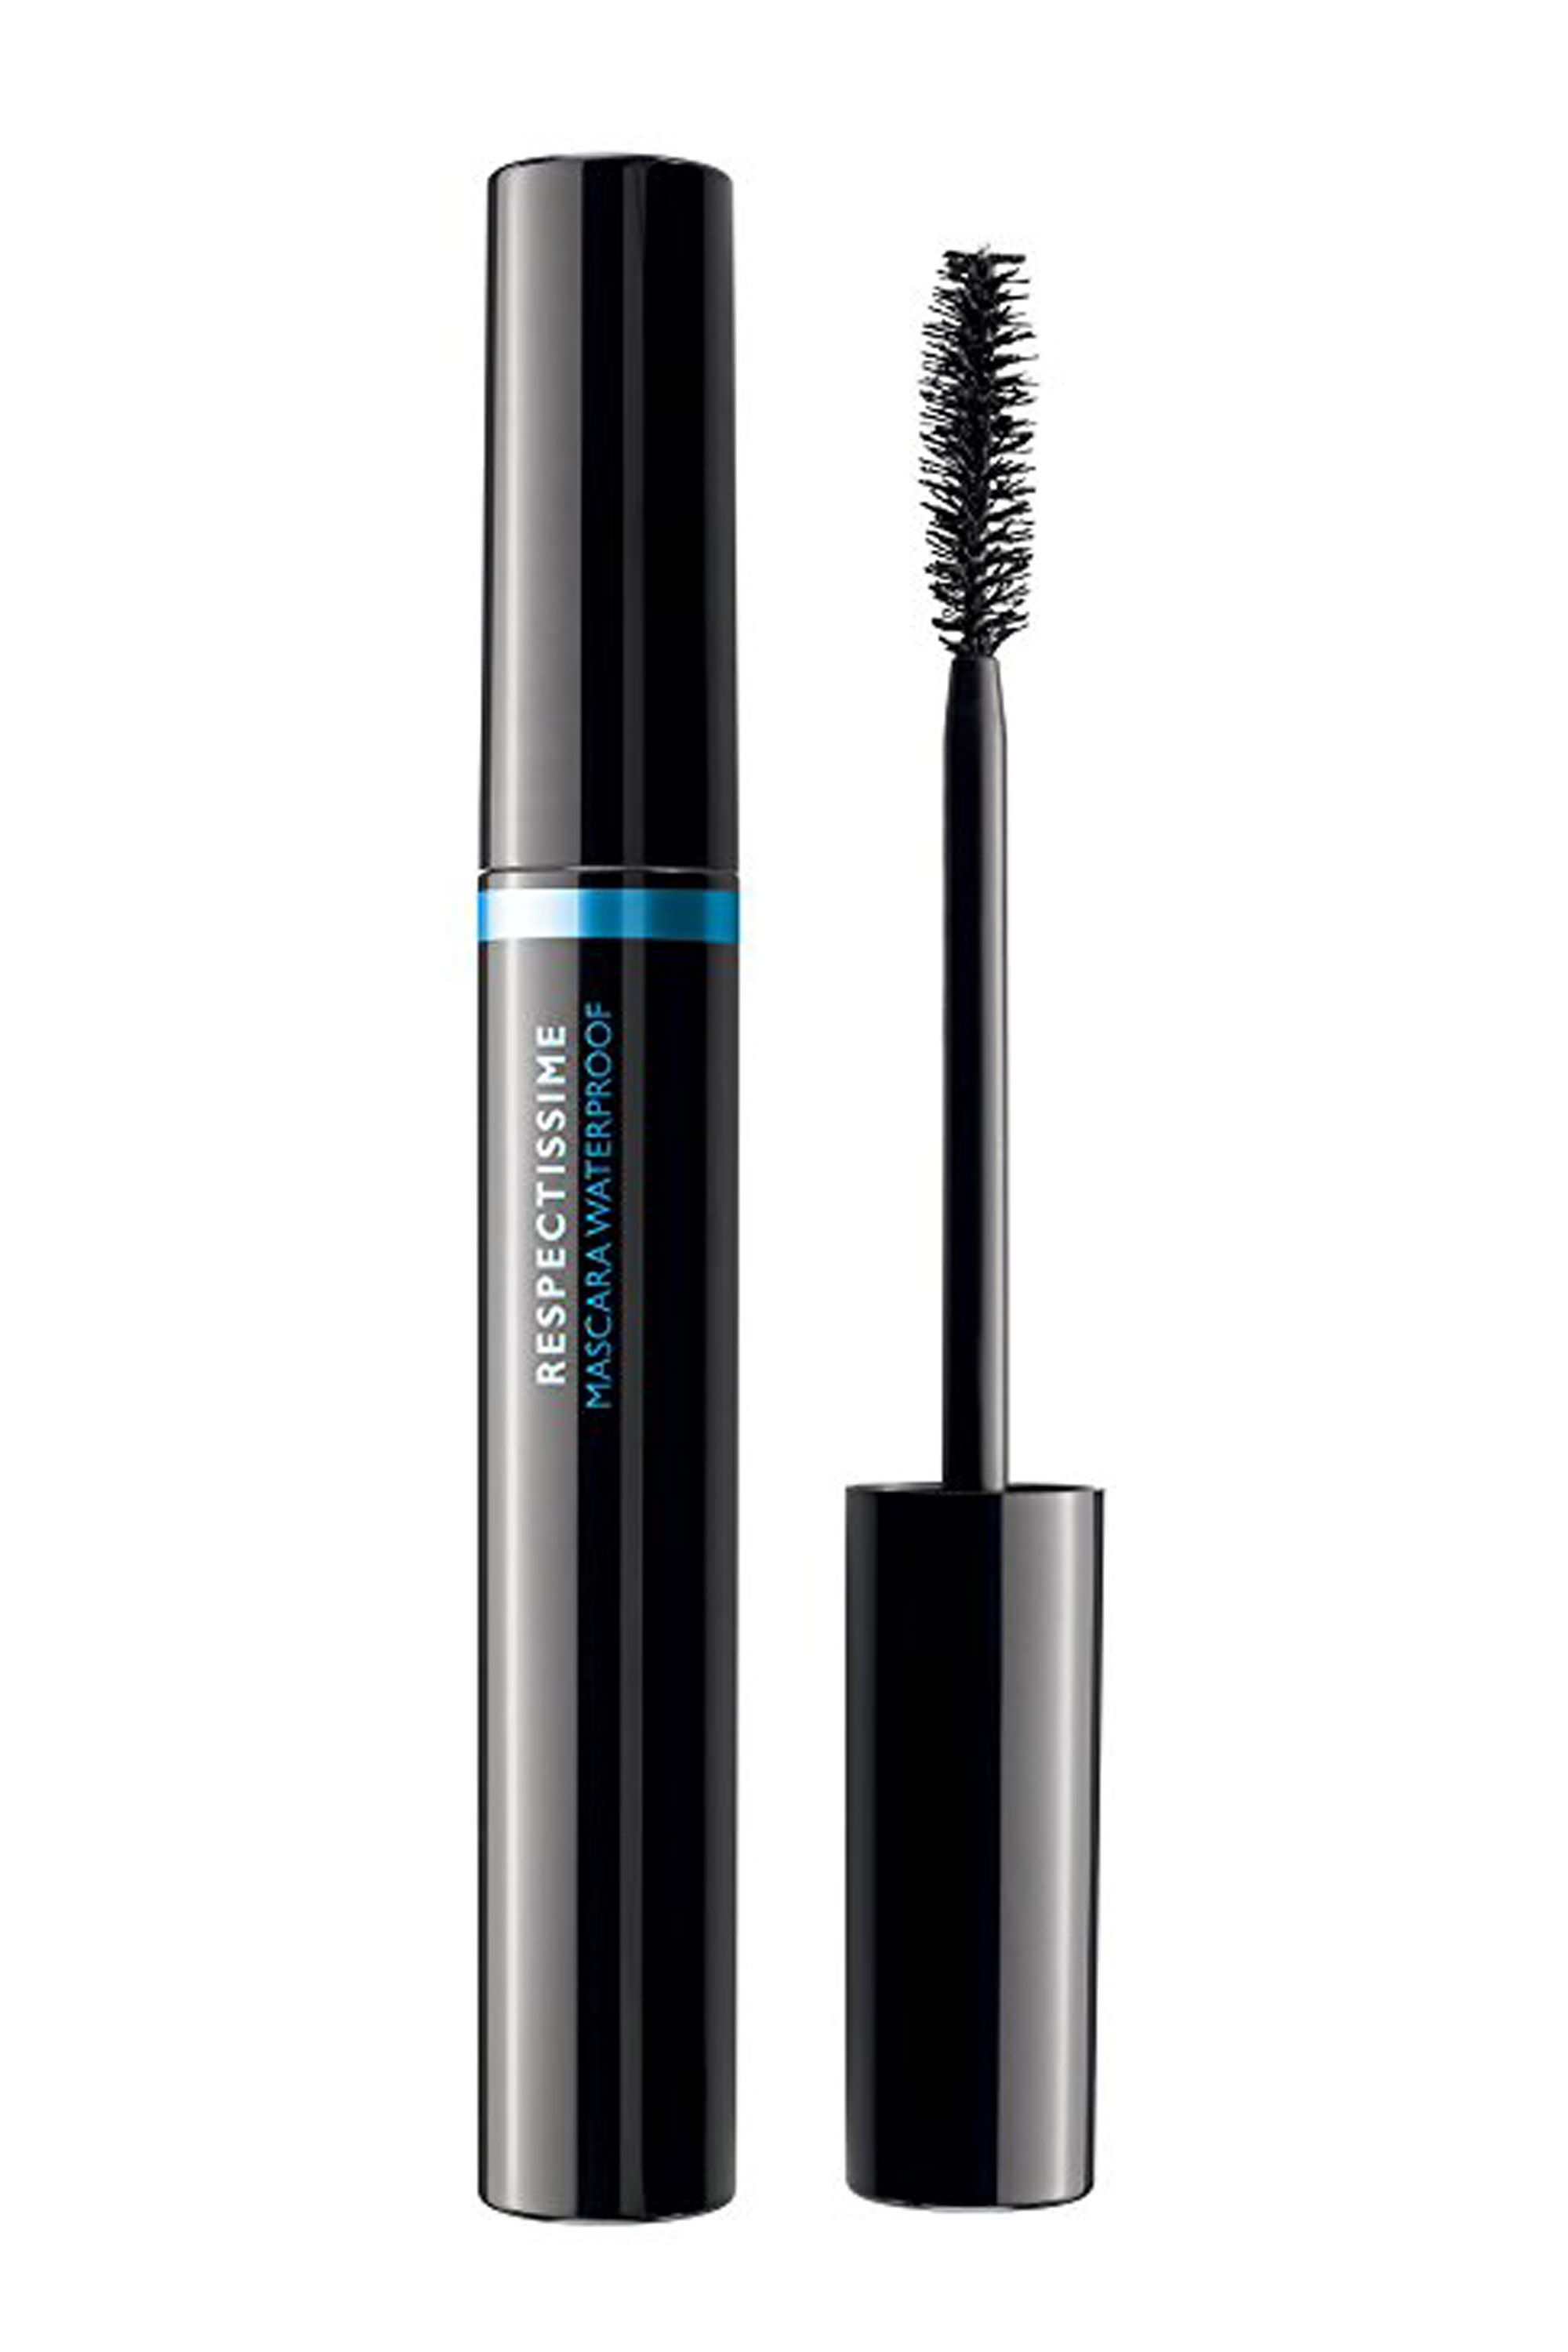 La Roche Posay Respectissime Waterproof Mascara